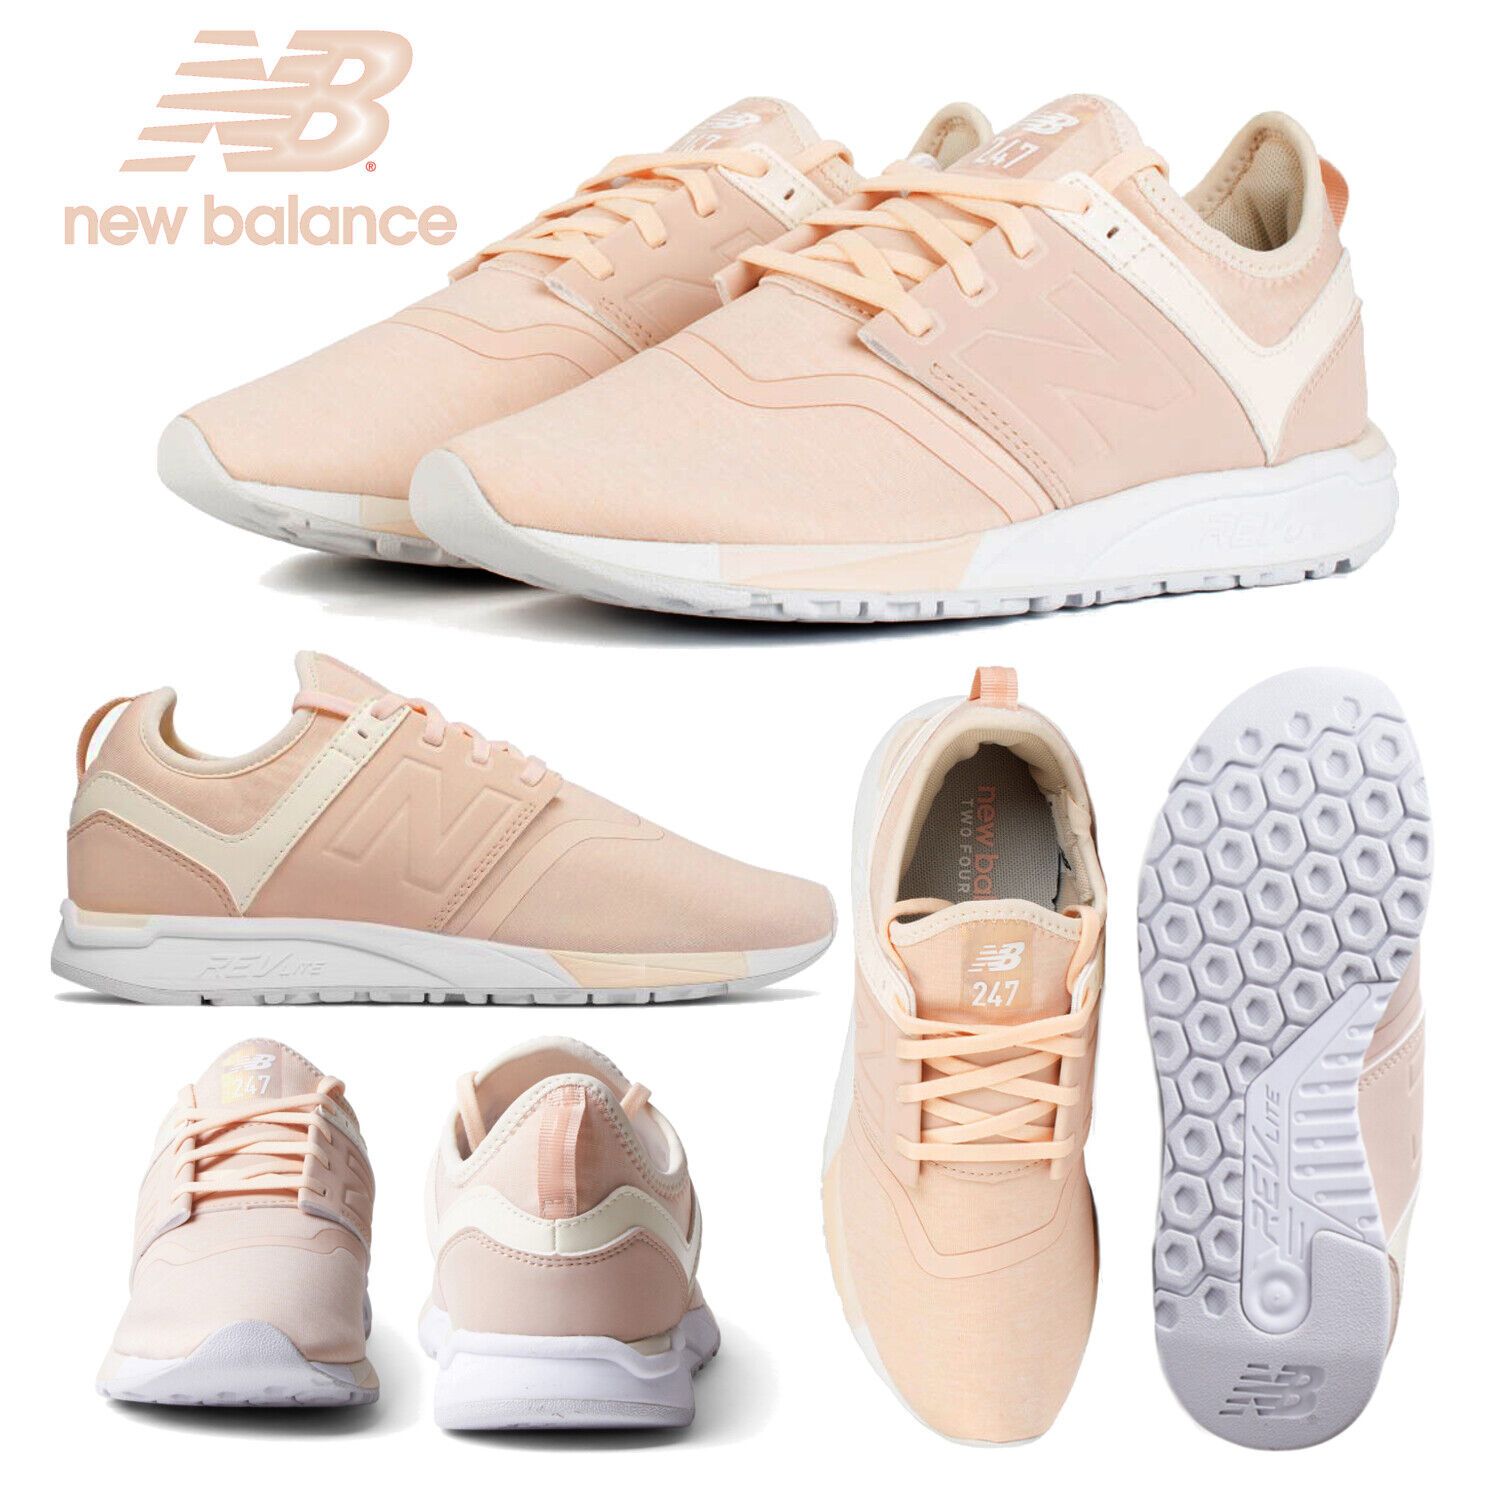 New Balance shoes 247 Classic Women's WRL247YC Light Pink Fashion Sneaker RP  80